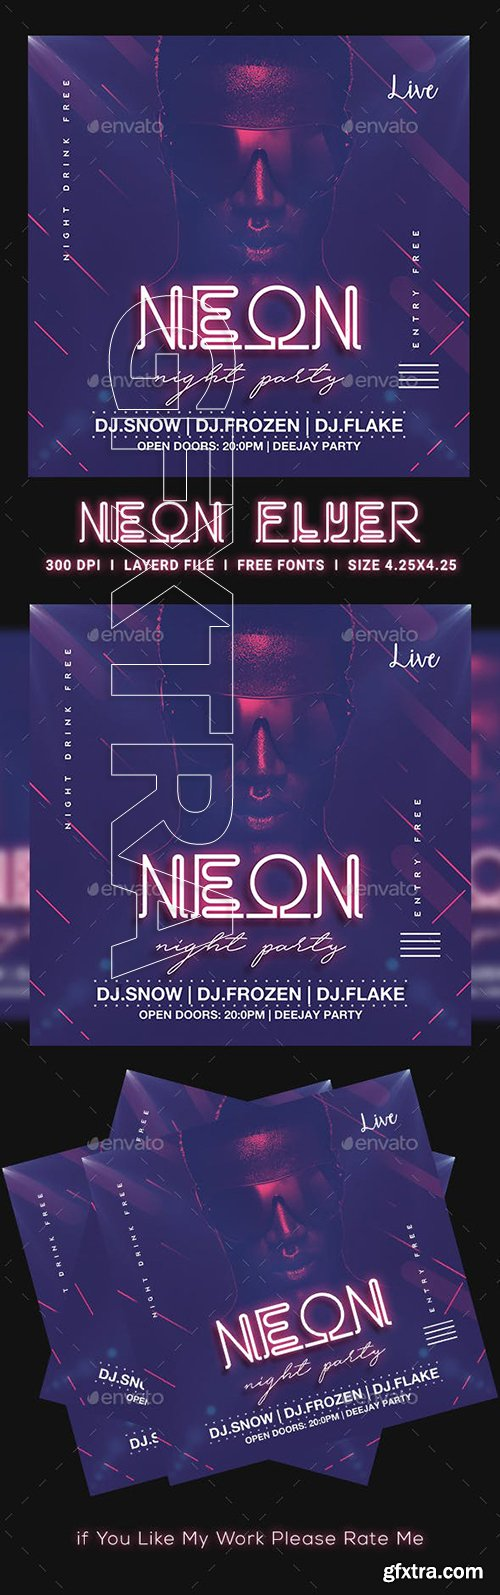 GraphicRiver - Neon Party Flyer 23147249